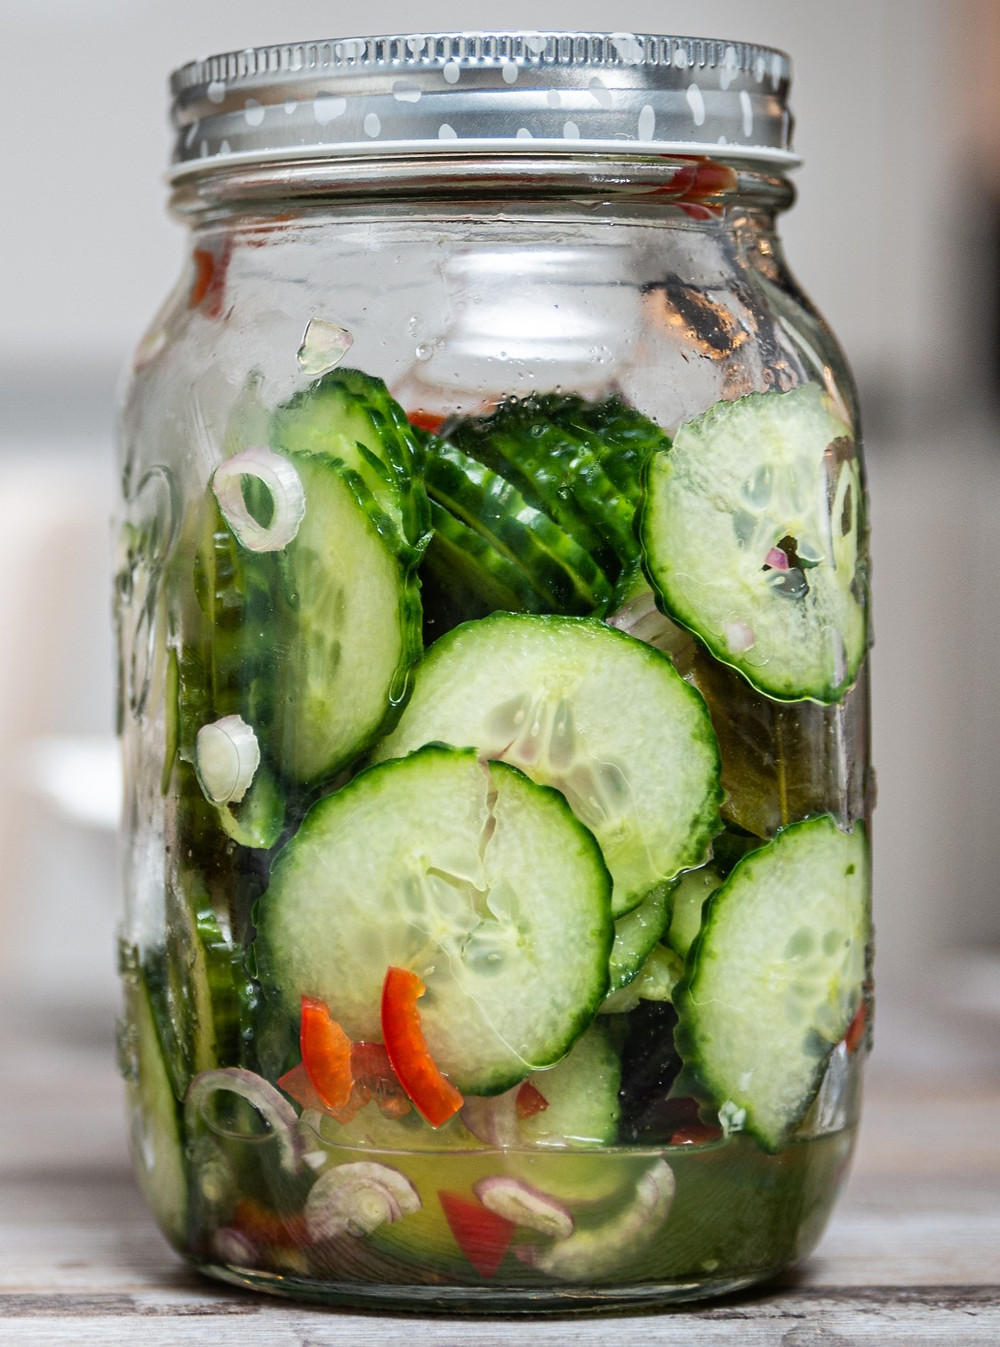 Acar Ketimun, Indonesian pickled cucumber with shallots and chilies in a mason jar